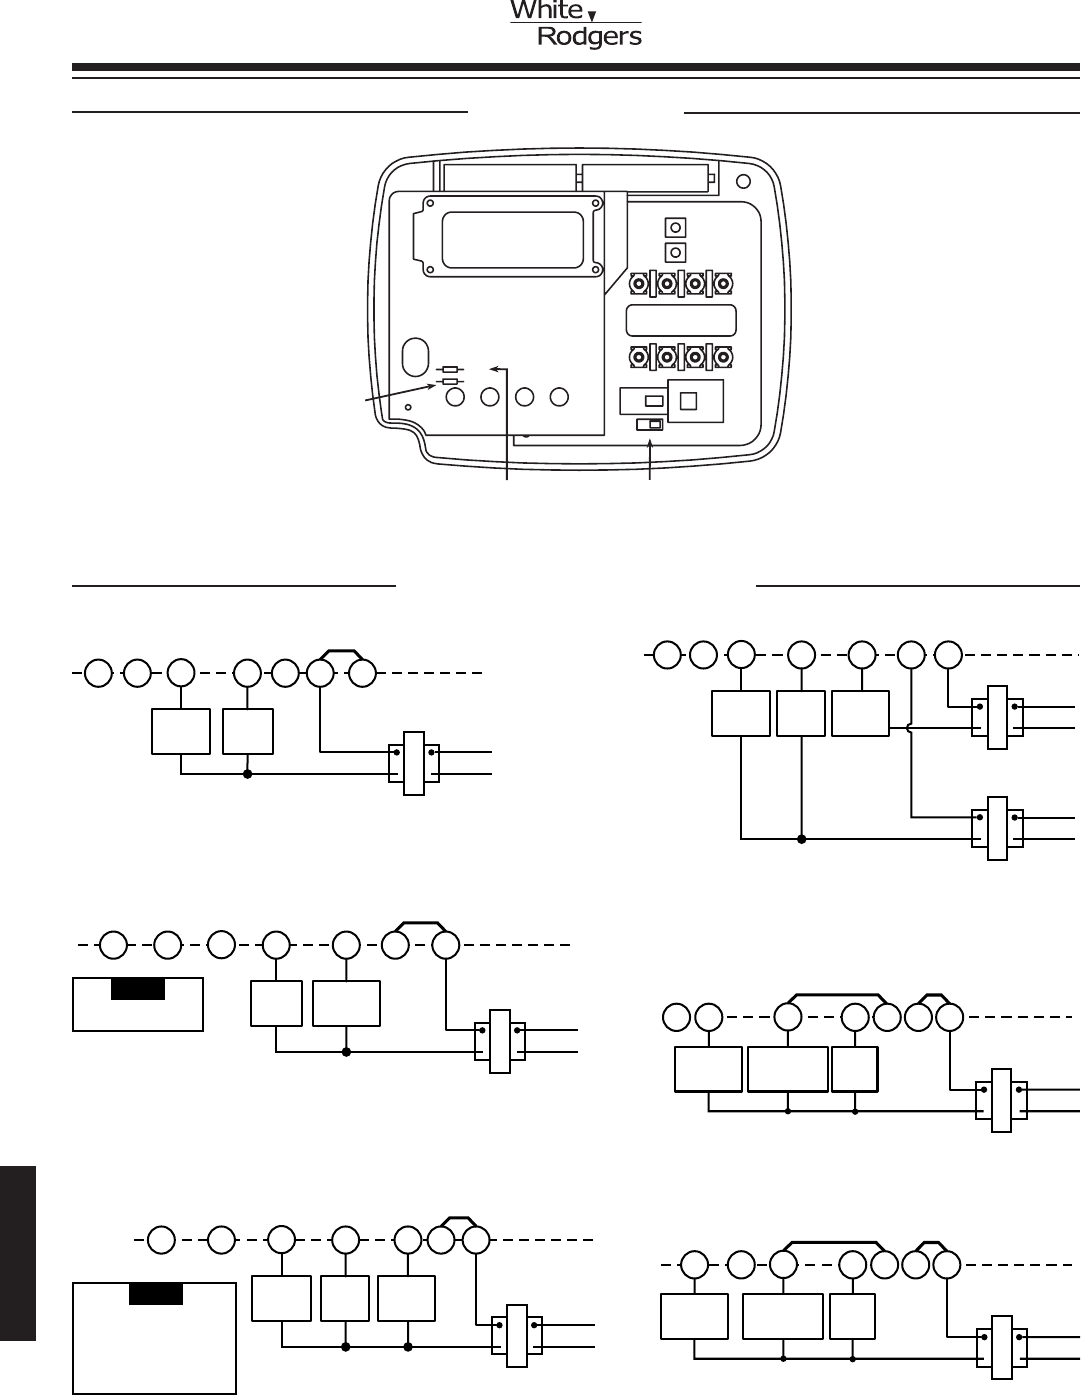 emerson thermostat wiring diagram emerson get free image about wiring diagram